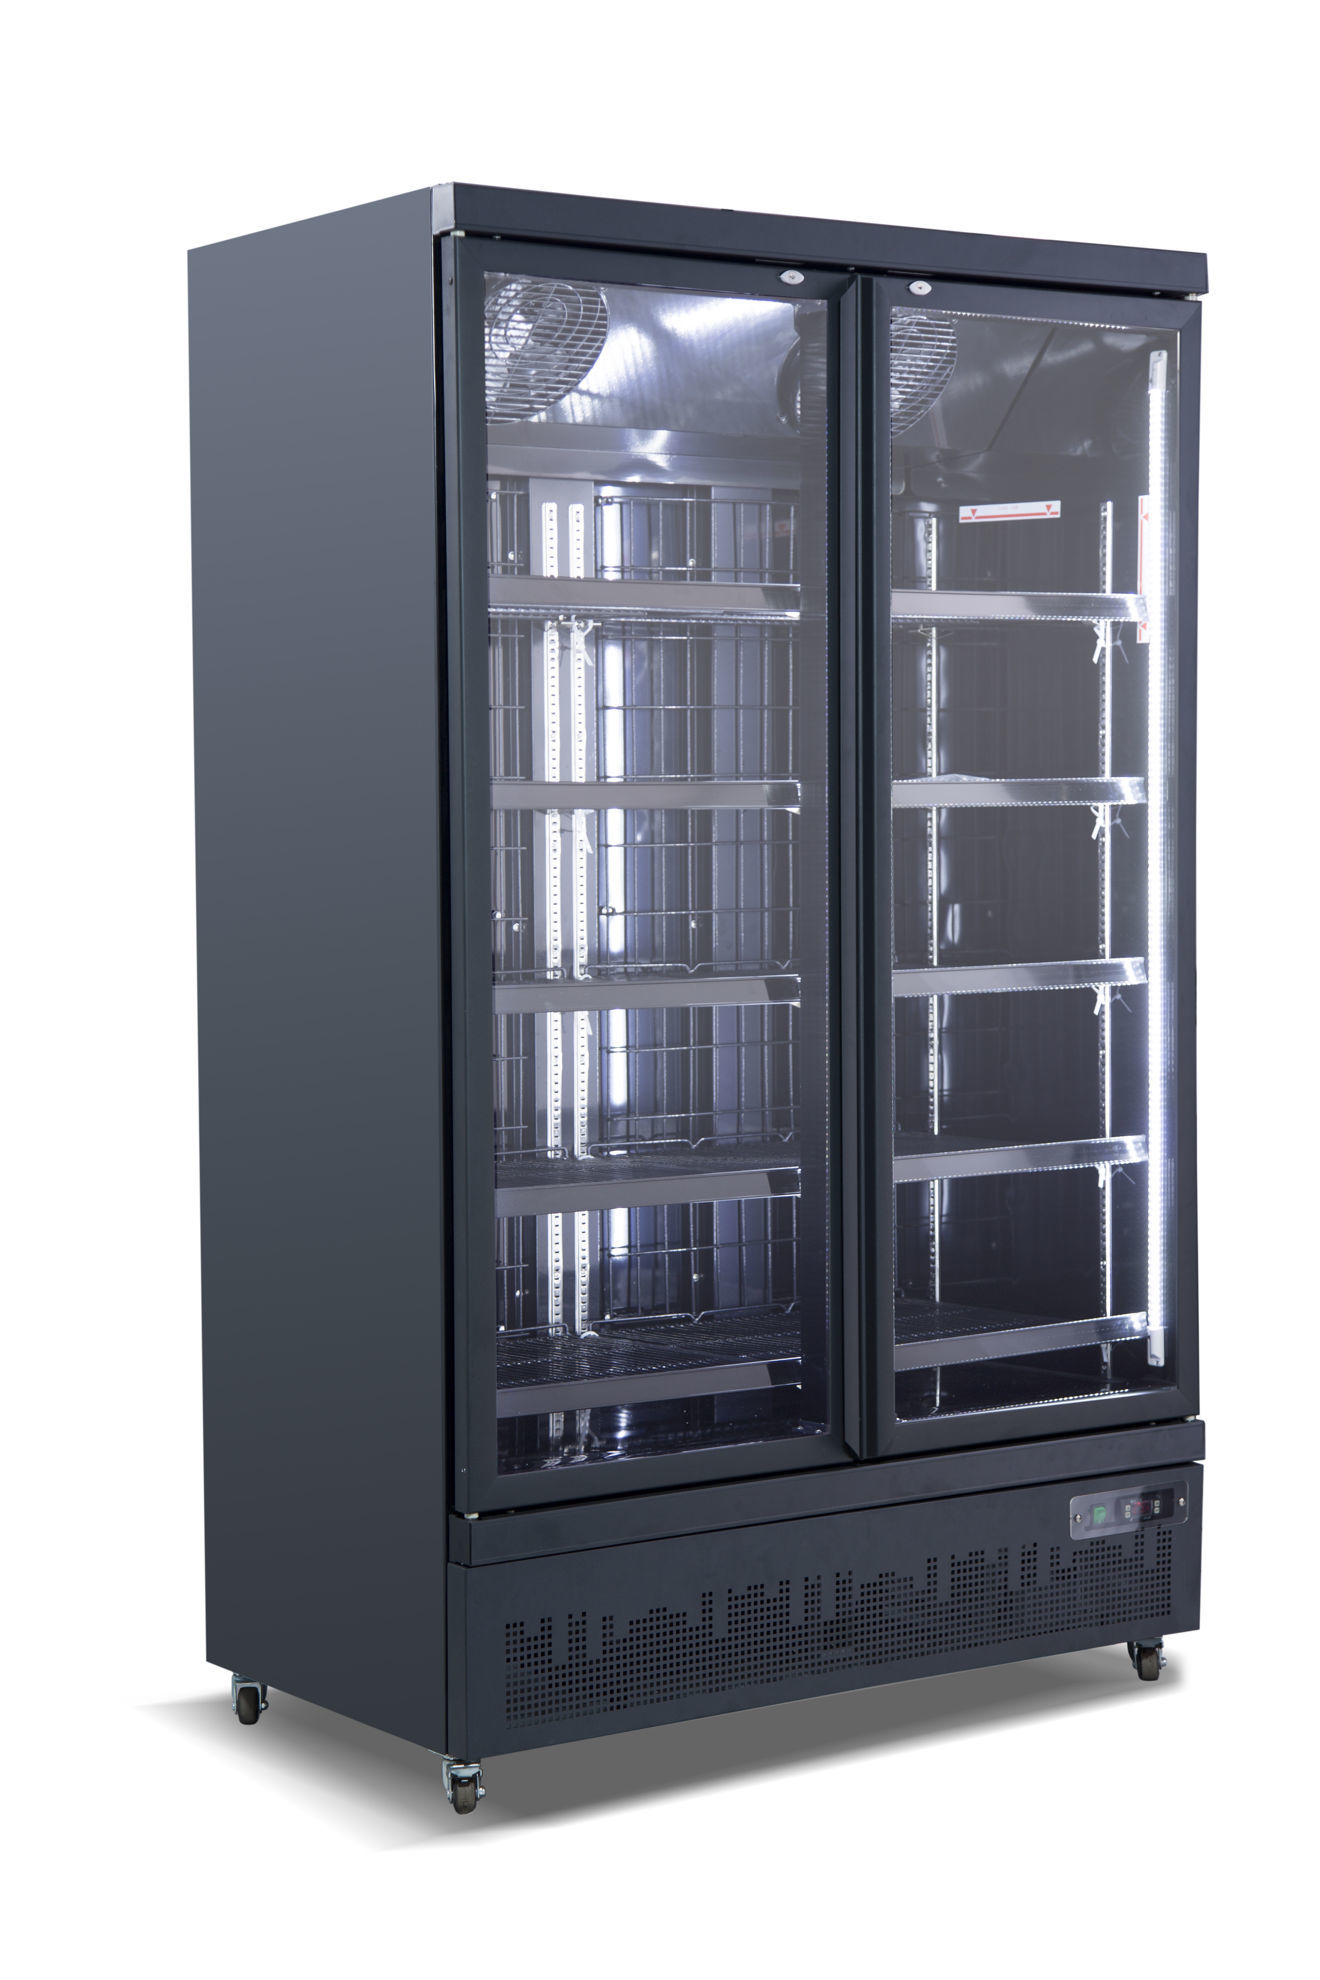 Picture of ICCOLD FD BD126AH Freezer